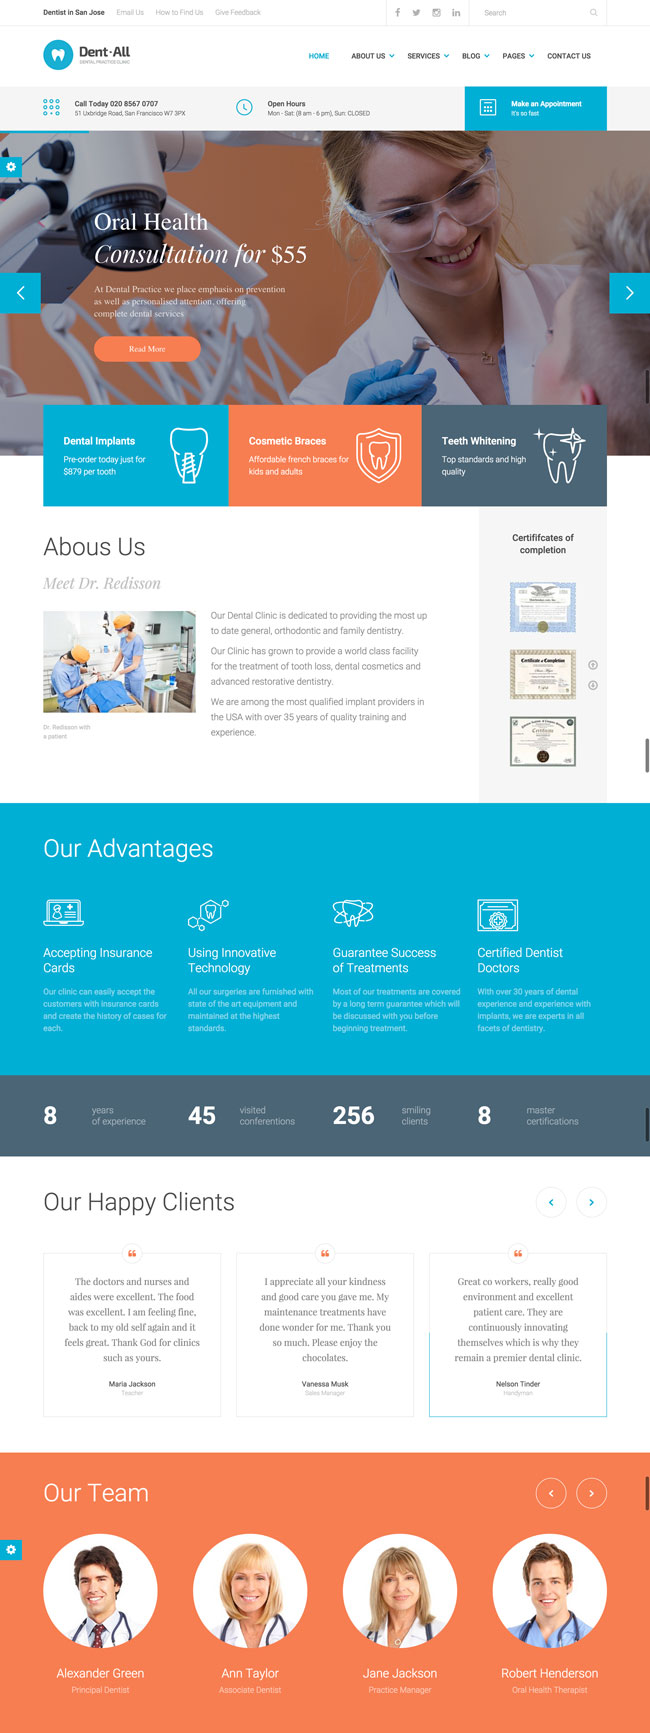 Dent-All-Dental-Practice-WordPress-Theme